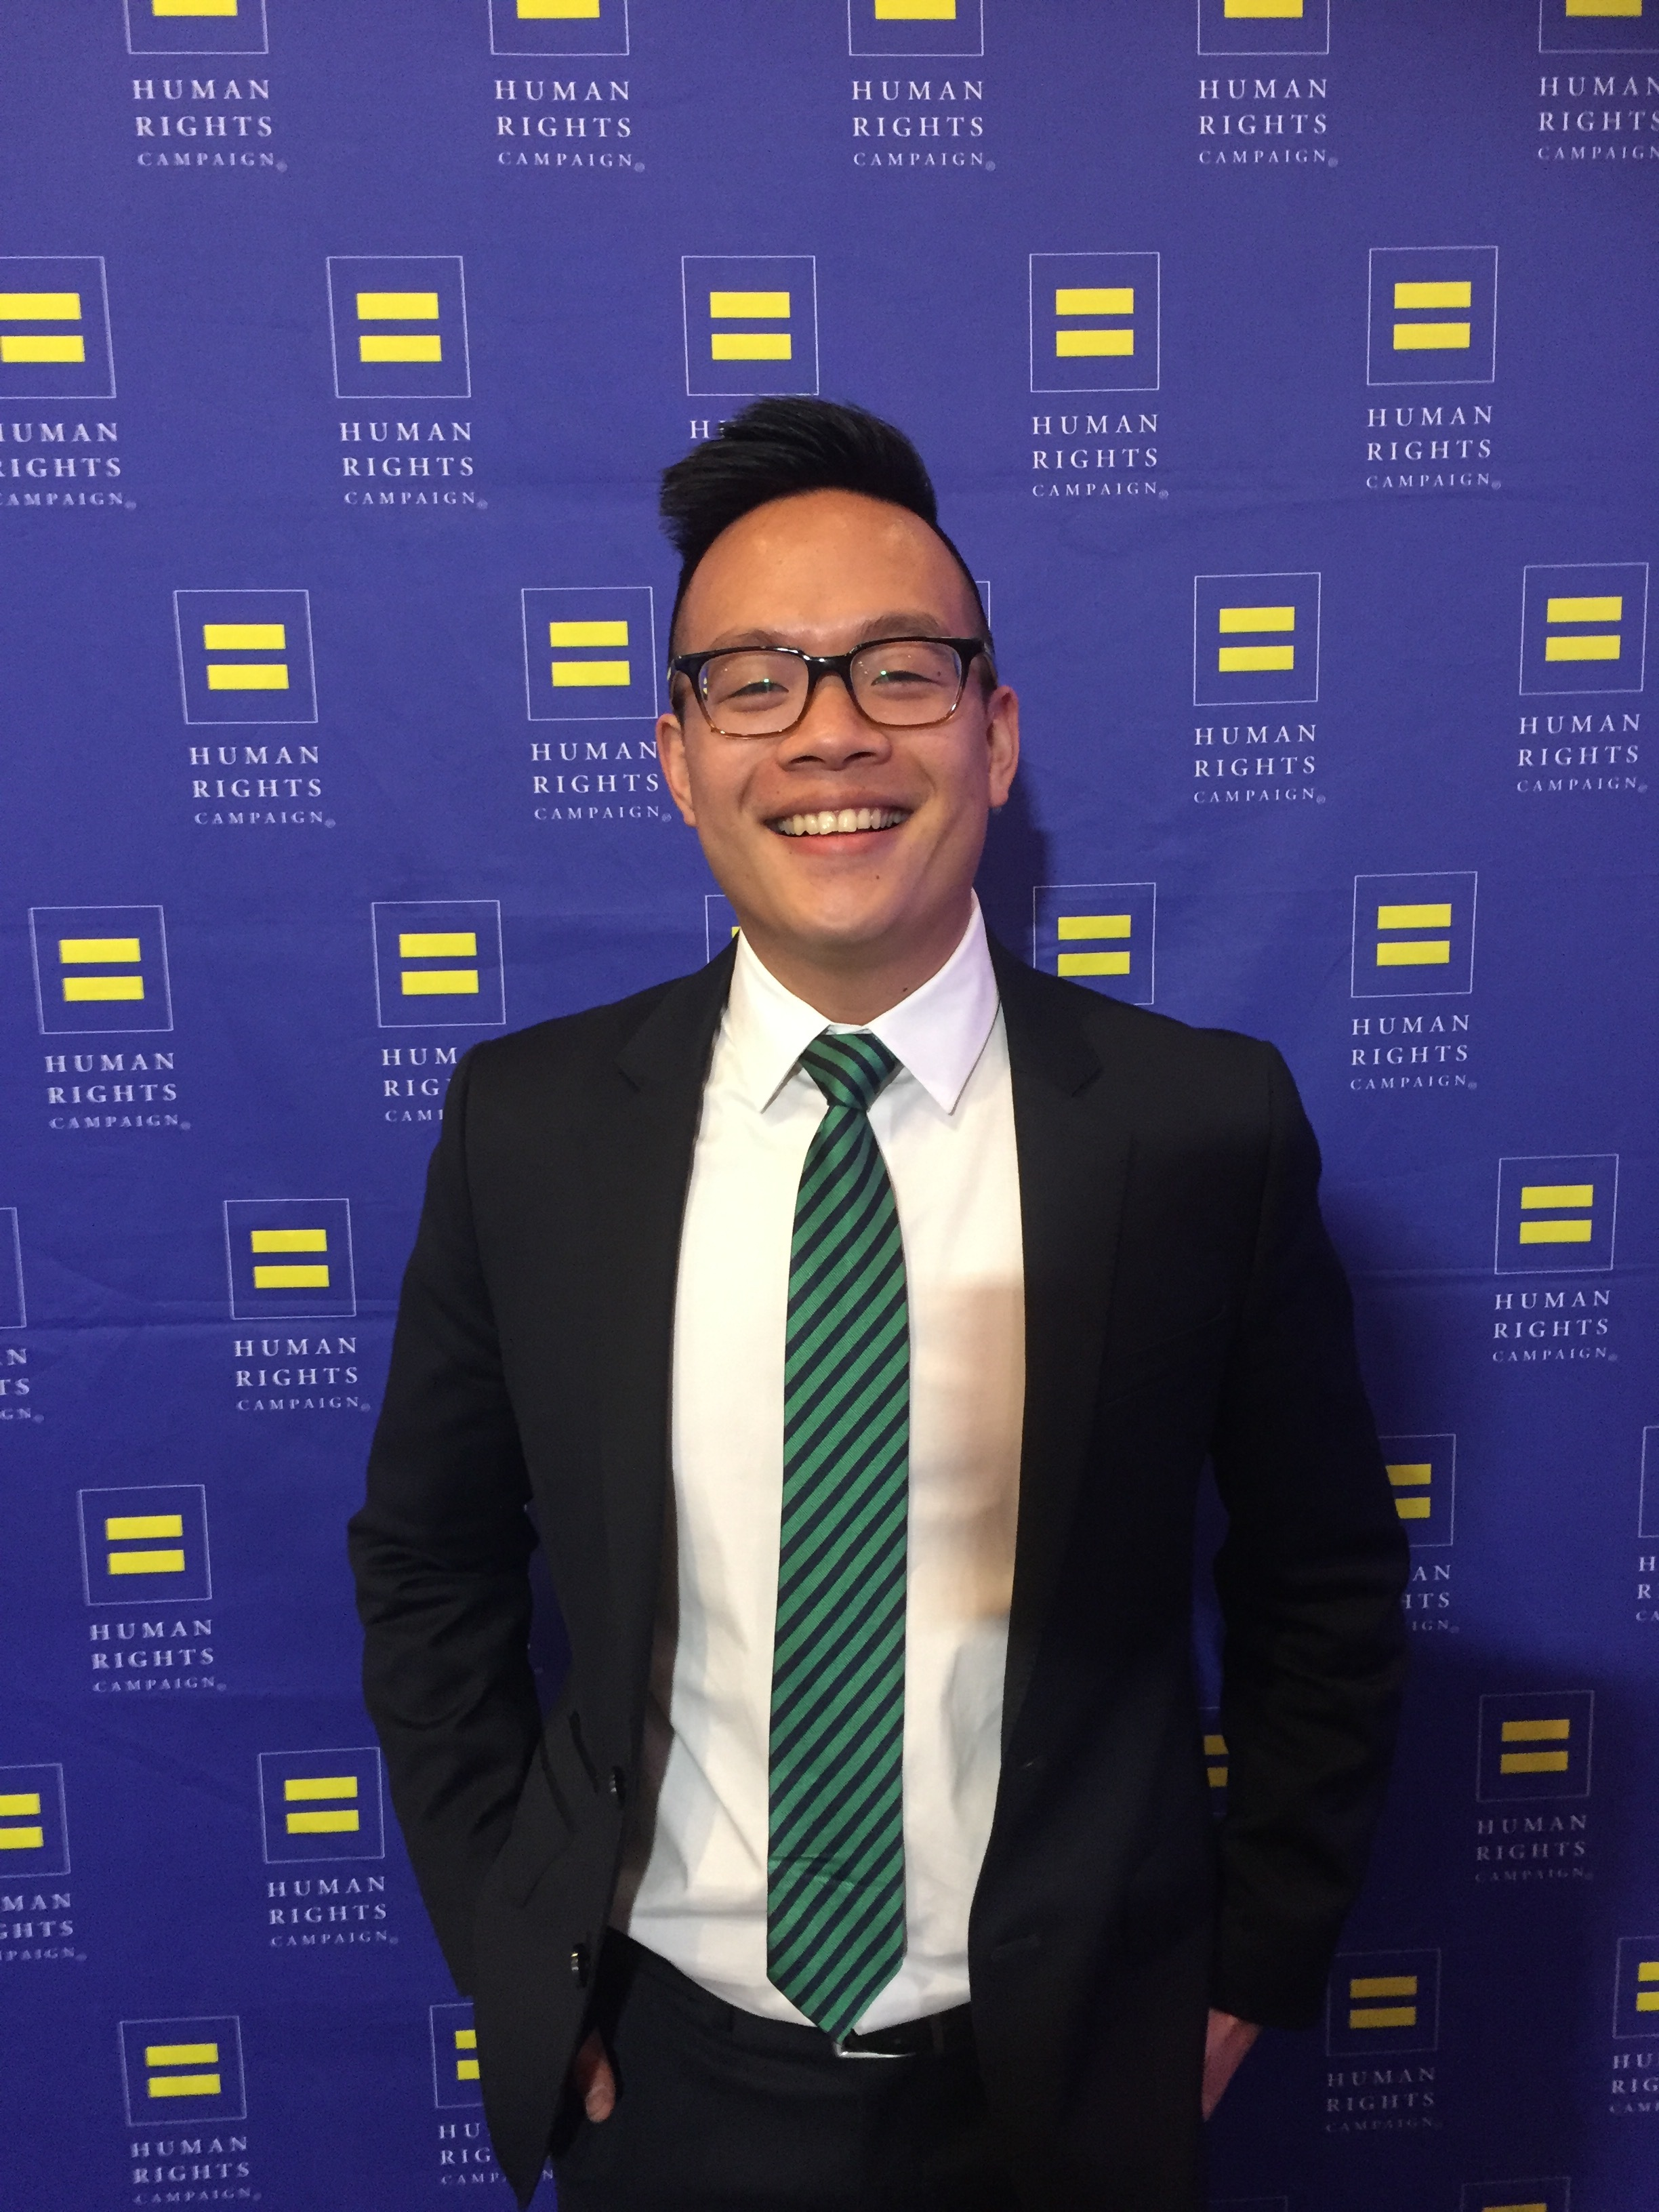 Sam Wang, Co-President - Sam is originally from Diamond Bar, CA. He graduated from UCLA with a major in Human Biology and Society and a minor in Public Affairs. He is interested in issues at the intersection of science, health, and law. In his free time, Sam enjoys sampling craft beers, cooking, and singing along to pretty much any song.Other Engagements: Vice-President of OutLaw, Cancer Pro Bono Project1L Summer: Health Affairs and Technology Law Group, University of California Office of General Counsel - Oakland, CA